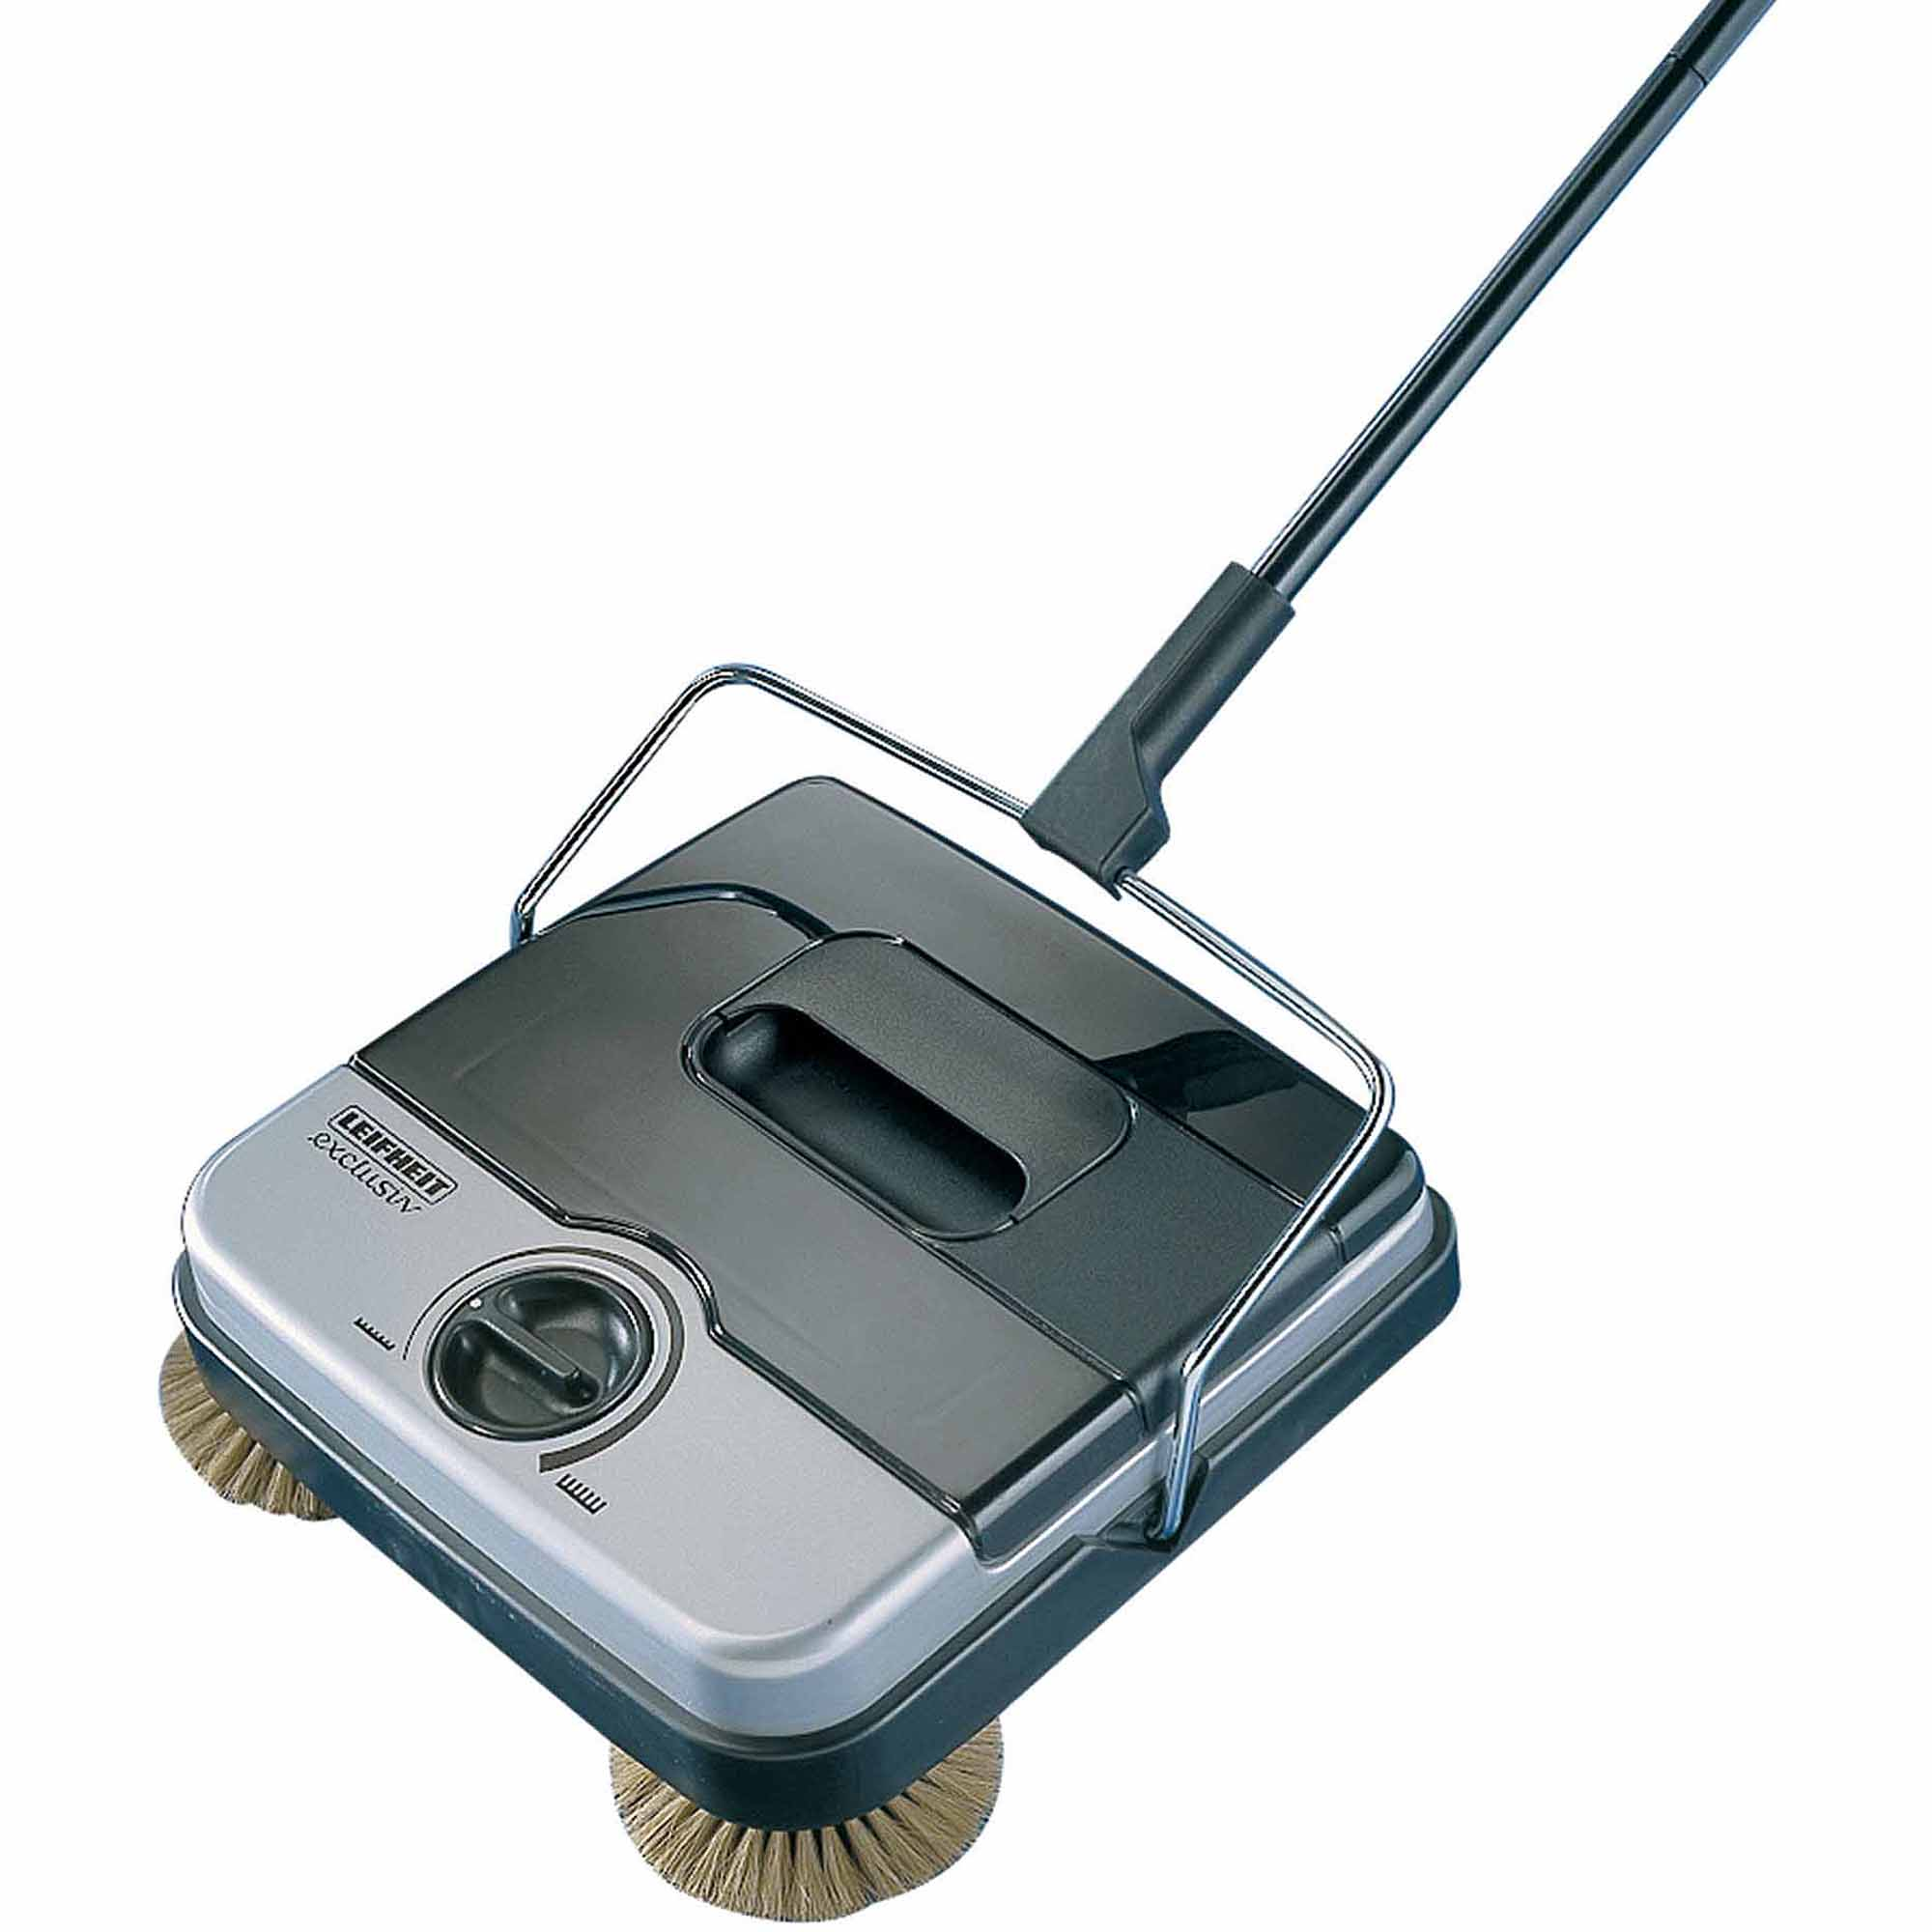 Leifheit Classic Manual Rotaro Carpet Sweeper with Natural Brushes, Black and Grey